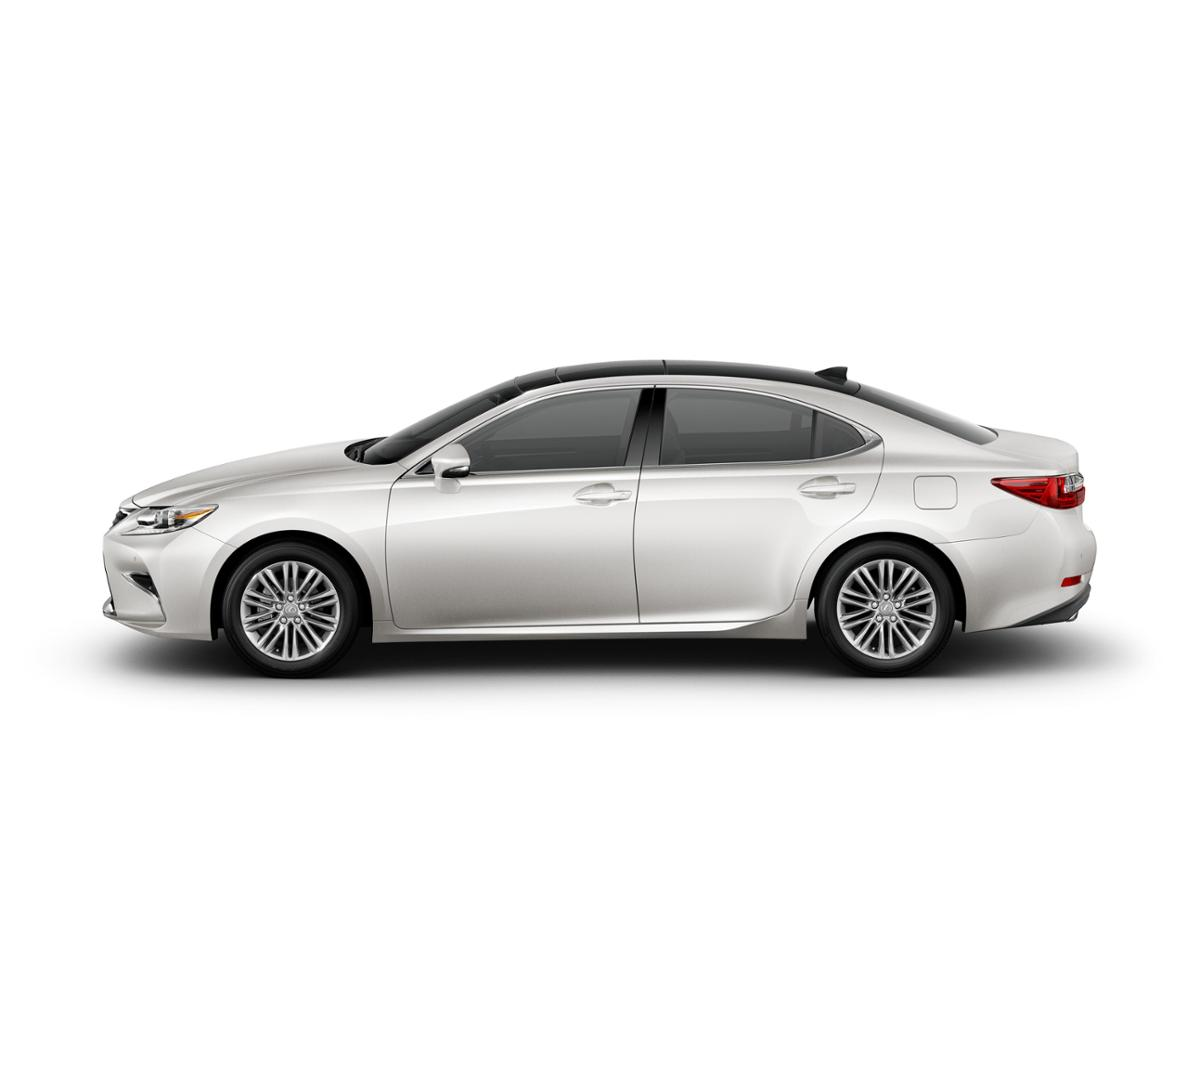 2018 Lexus ES 350 Vehicle Photo in Danvers, MA 01923